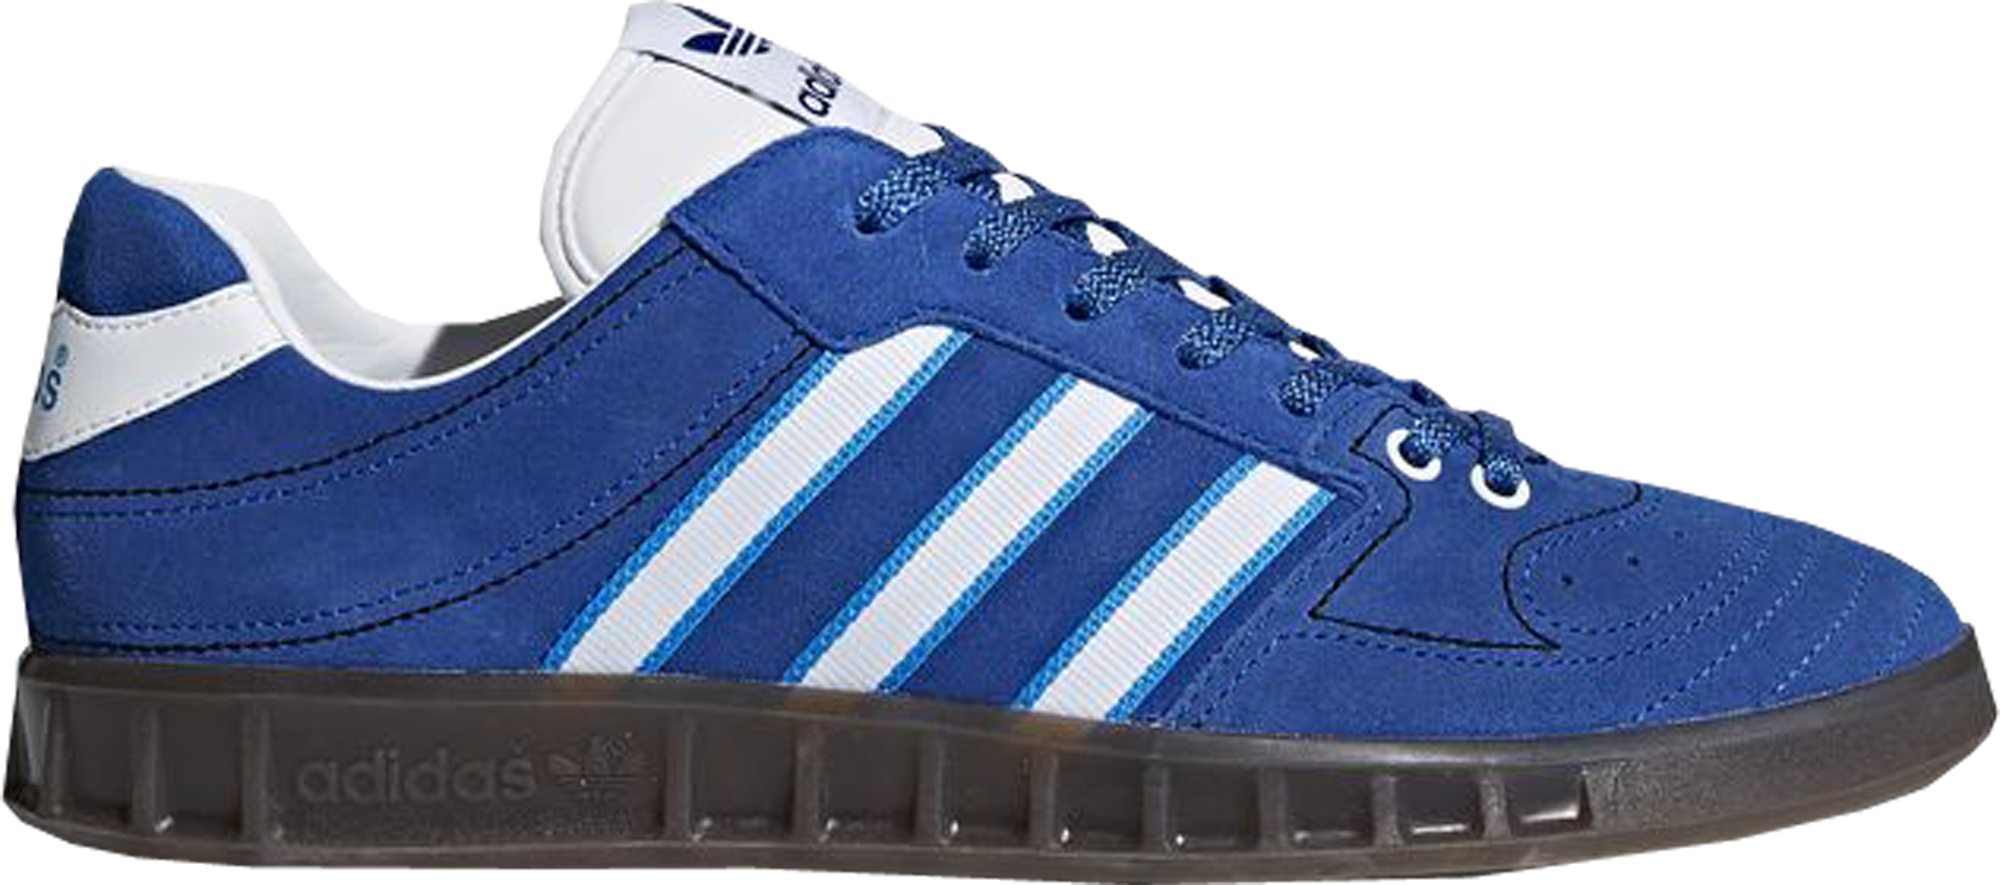 adidas Spezial Handball Kreft Collegiate Royal